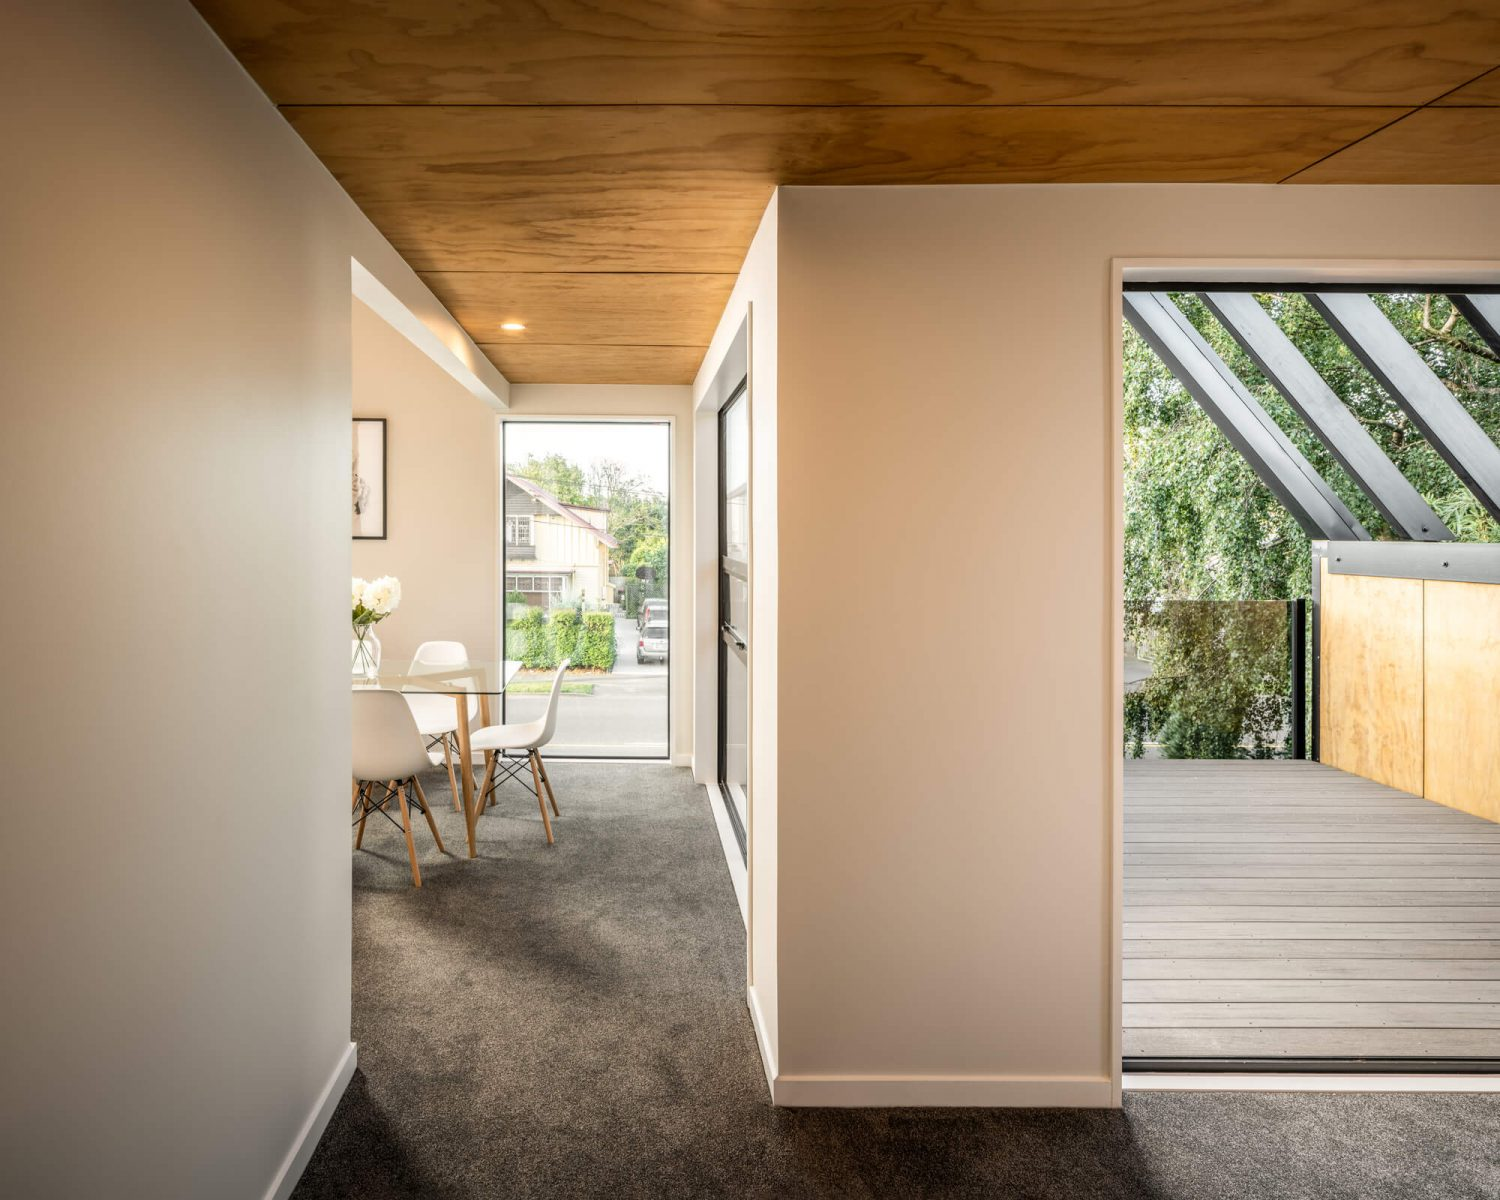 Hereford Flats by Young Architects